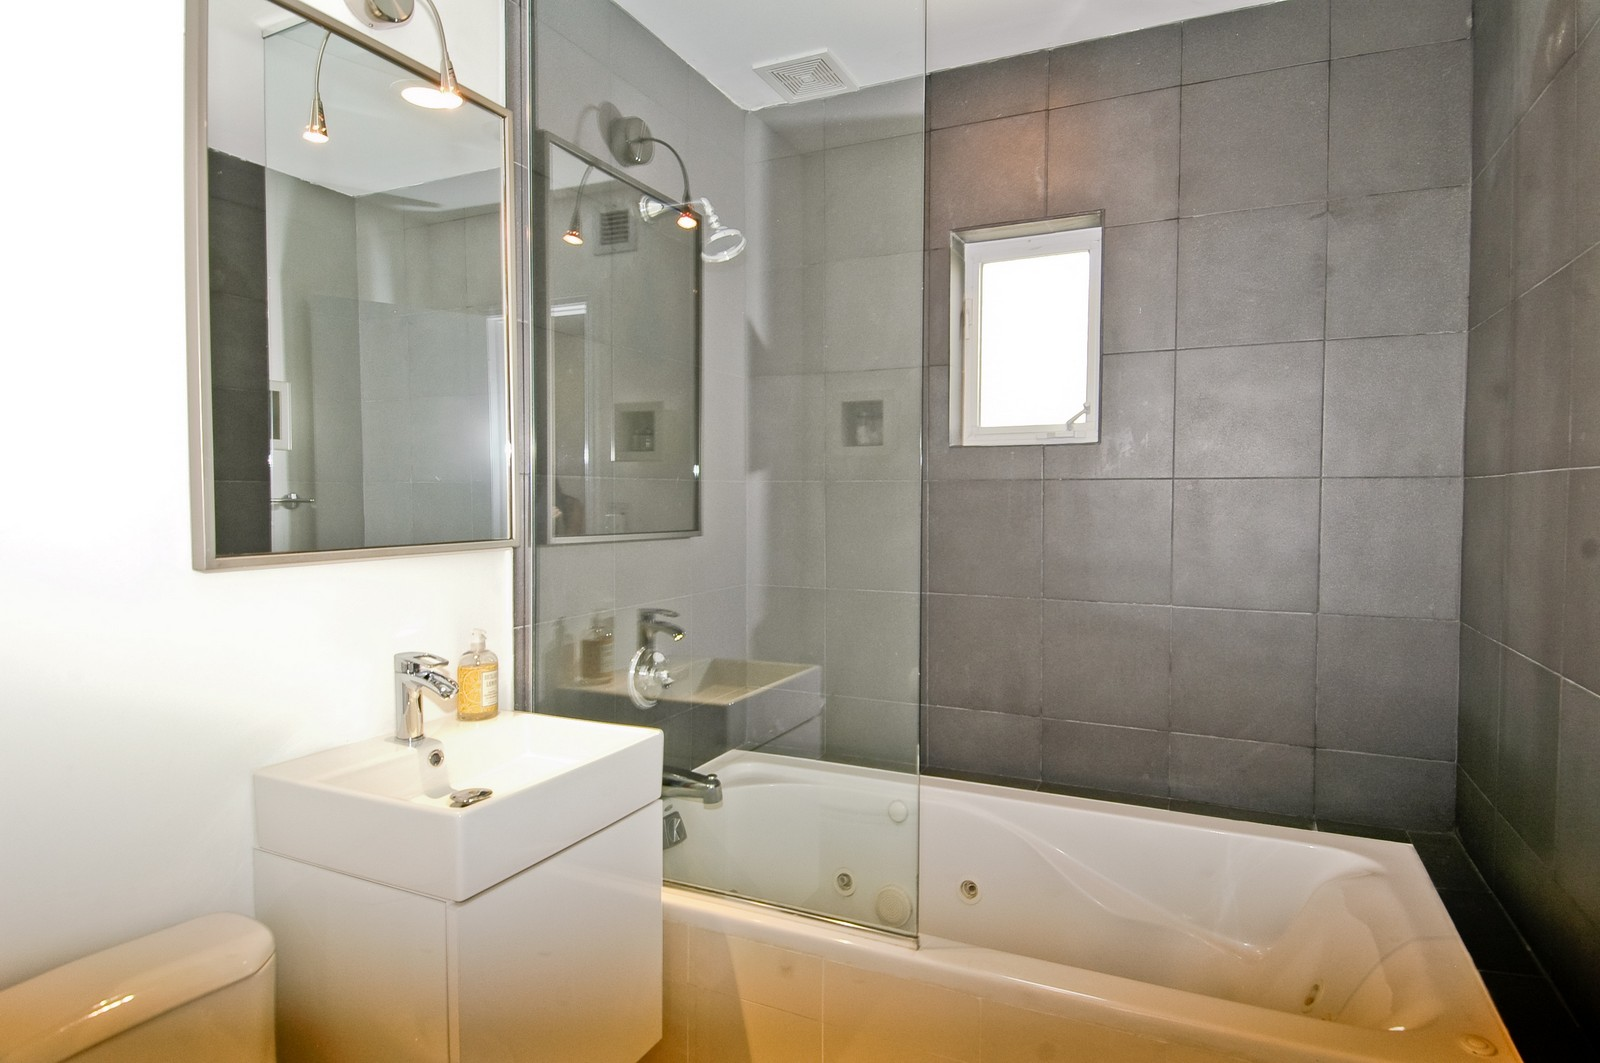 Real Estate Photography - 1500 Cleveland Rd, Miami Beach, FL, 33141 - Bathroom